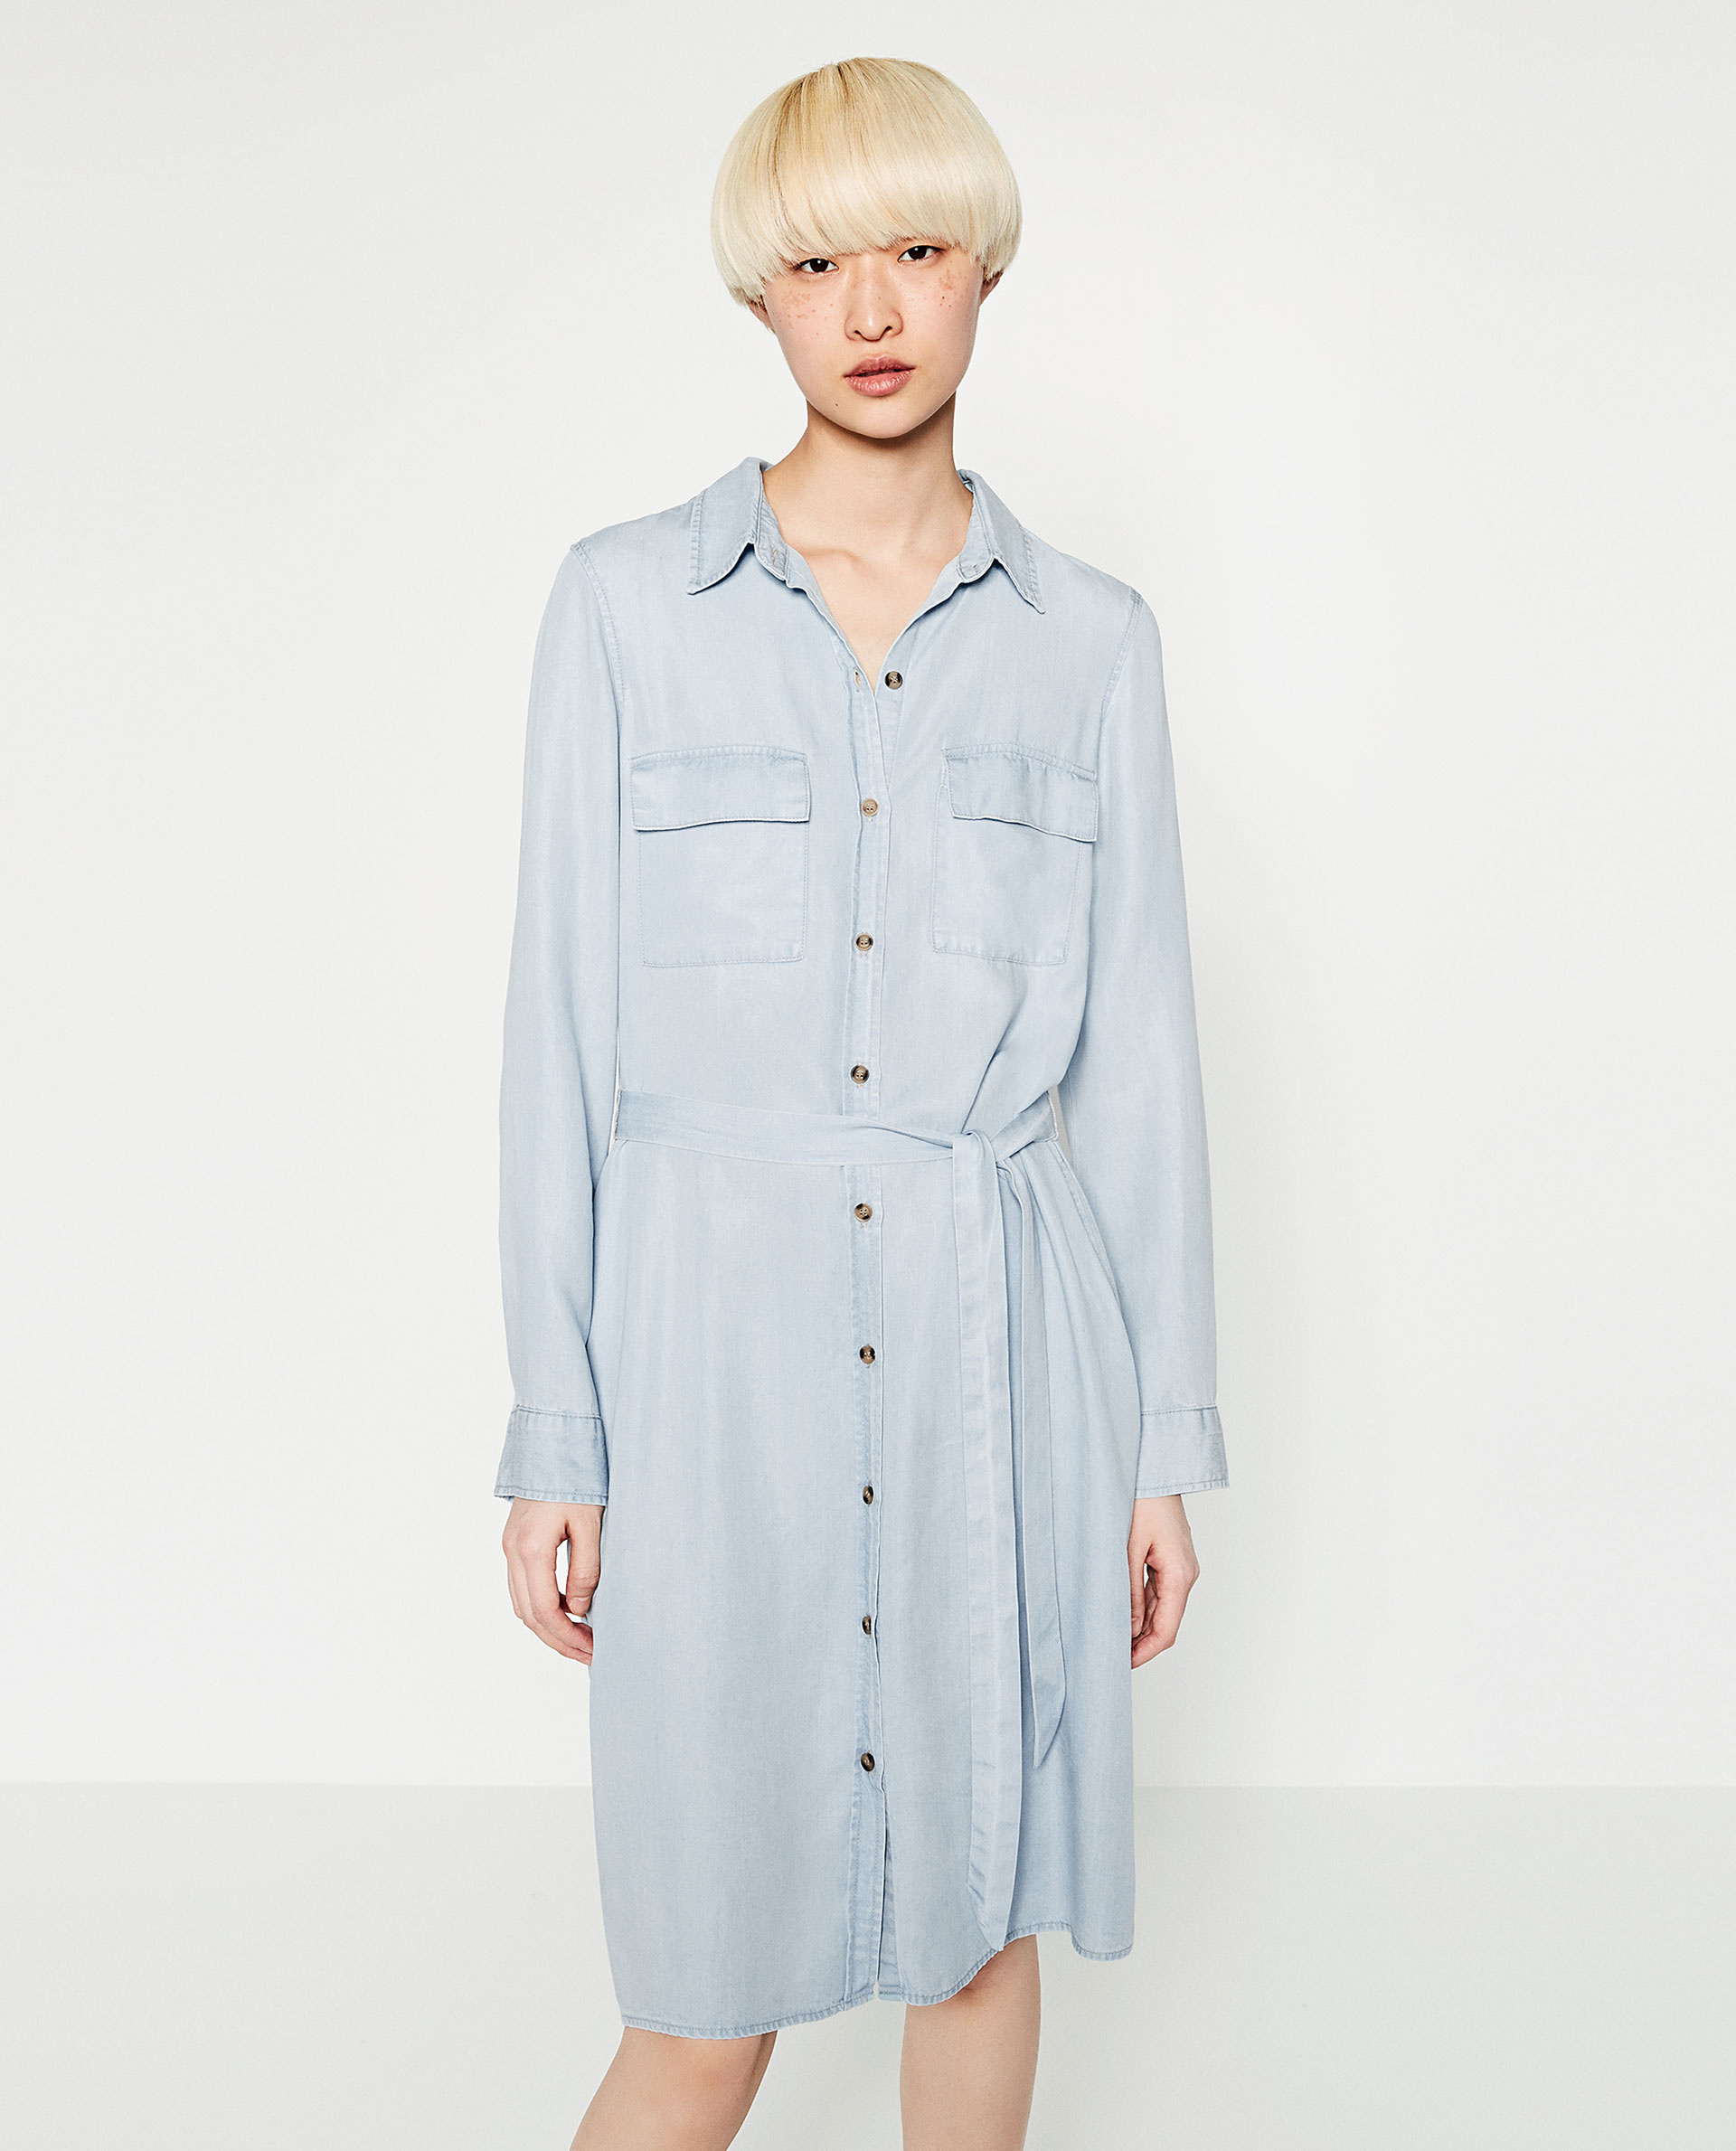 Zara Denim Shirt Dress in Blue